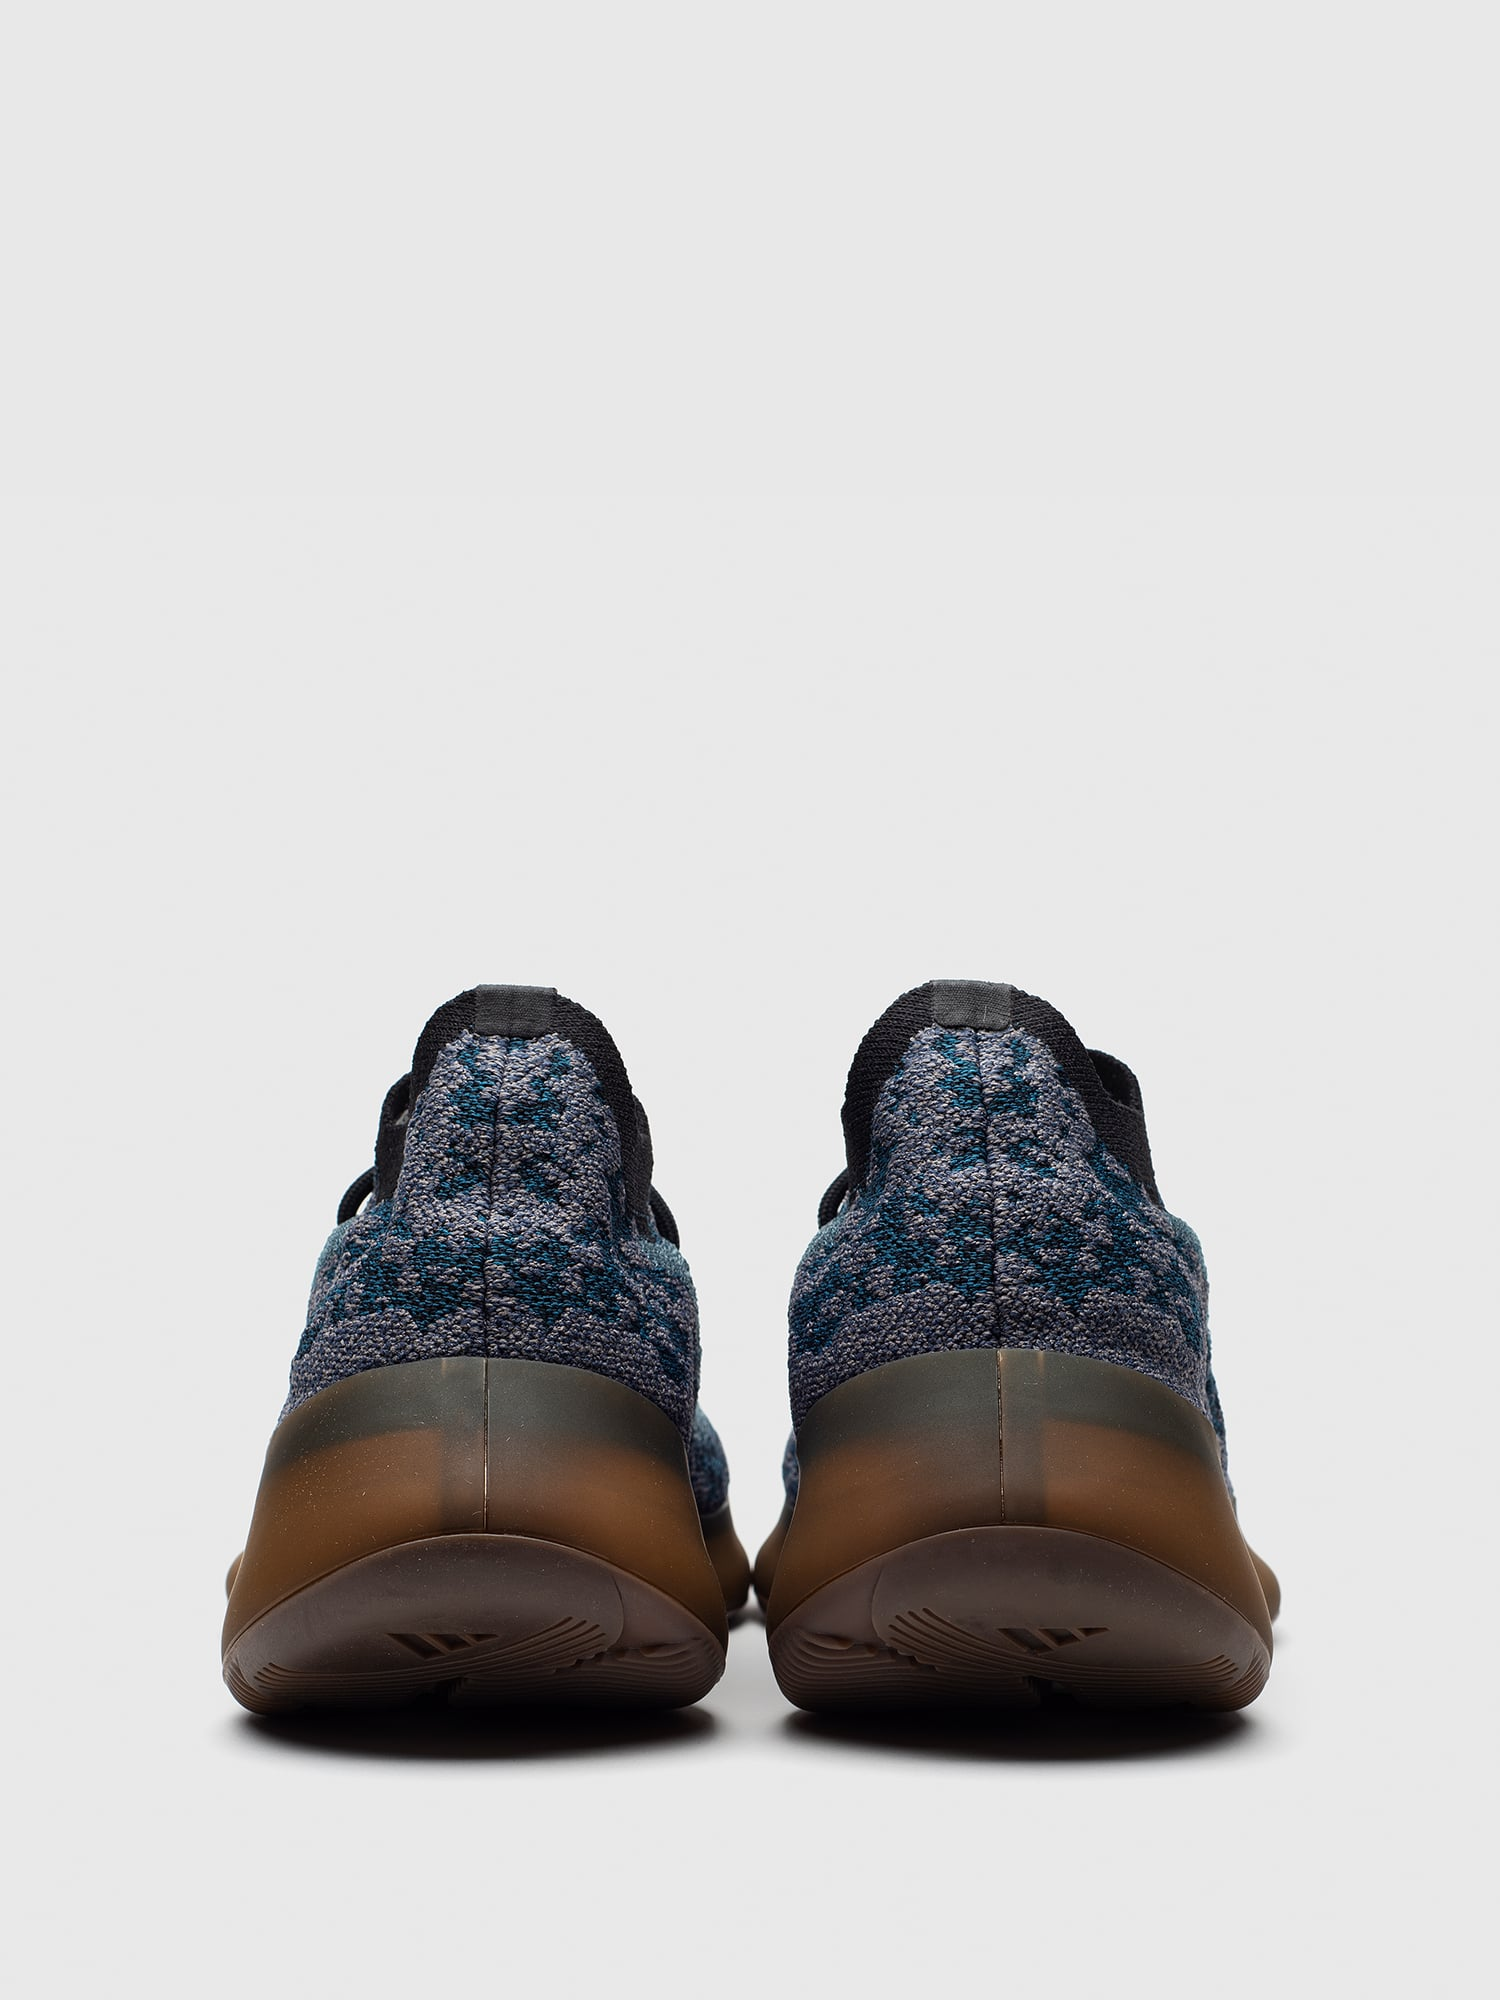 YEEZY BOOST 380 COVELL